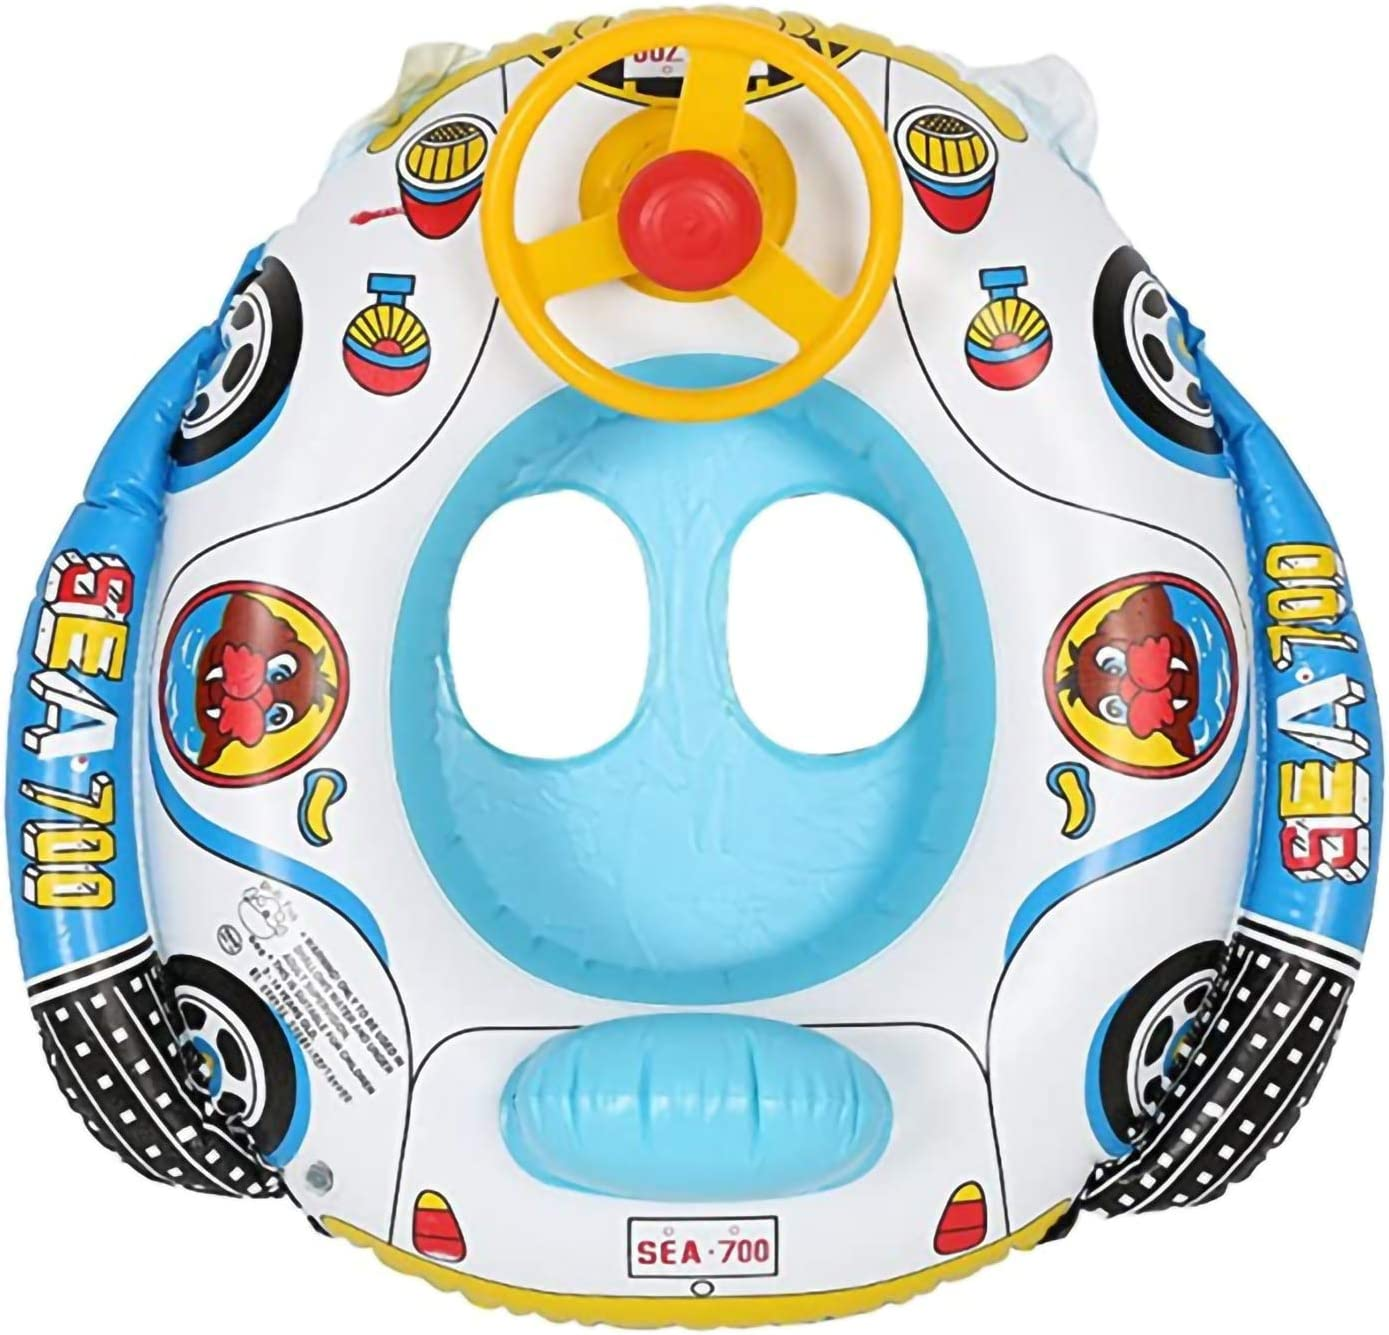 Baby Pool Fixed price for sale Float Inflatable Swimming Hor Wheel Steering with Ring San Antonio Mall